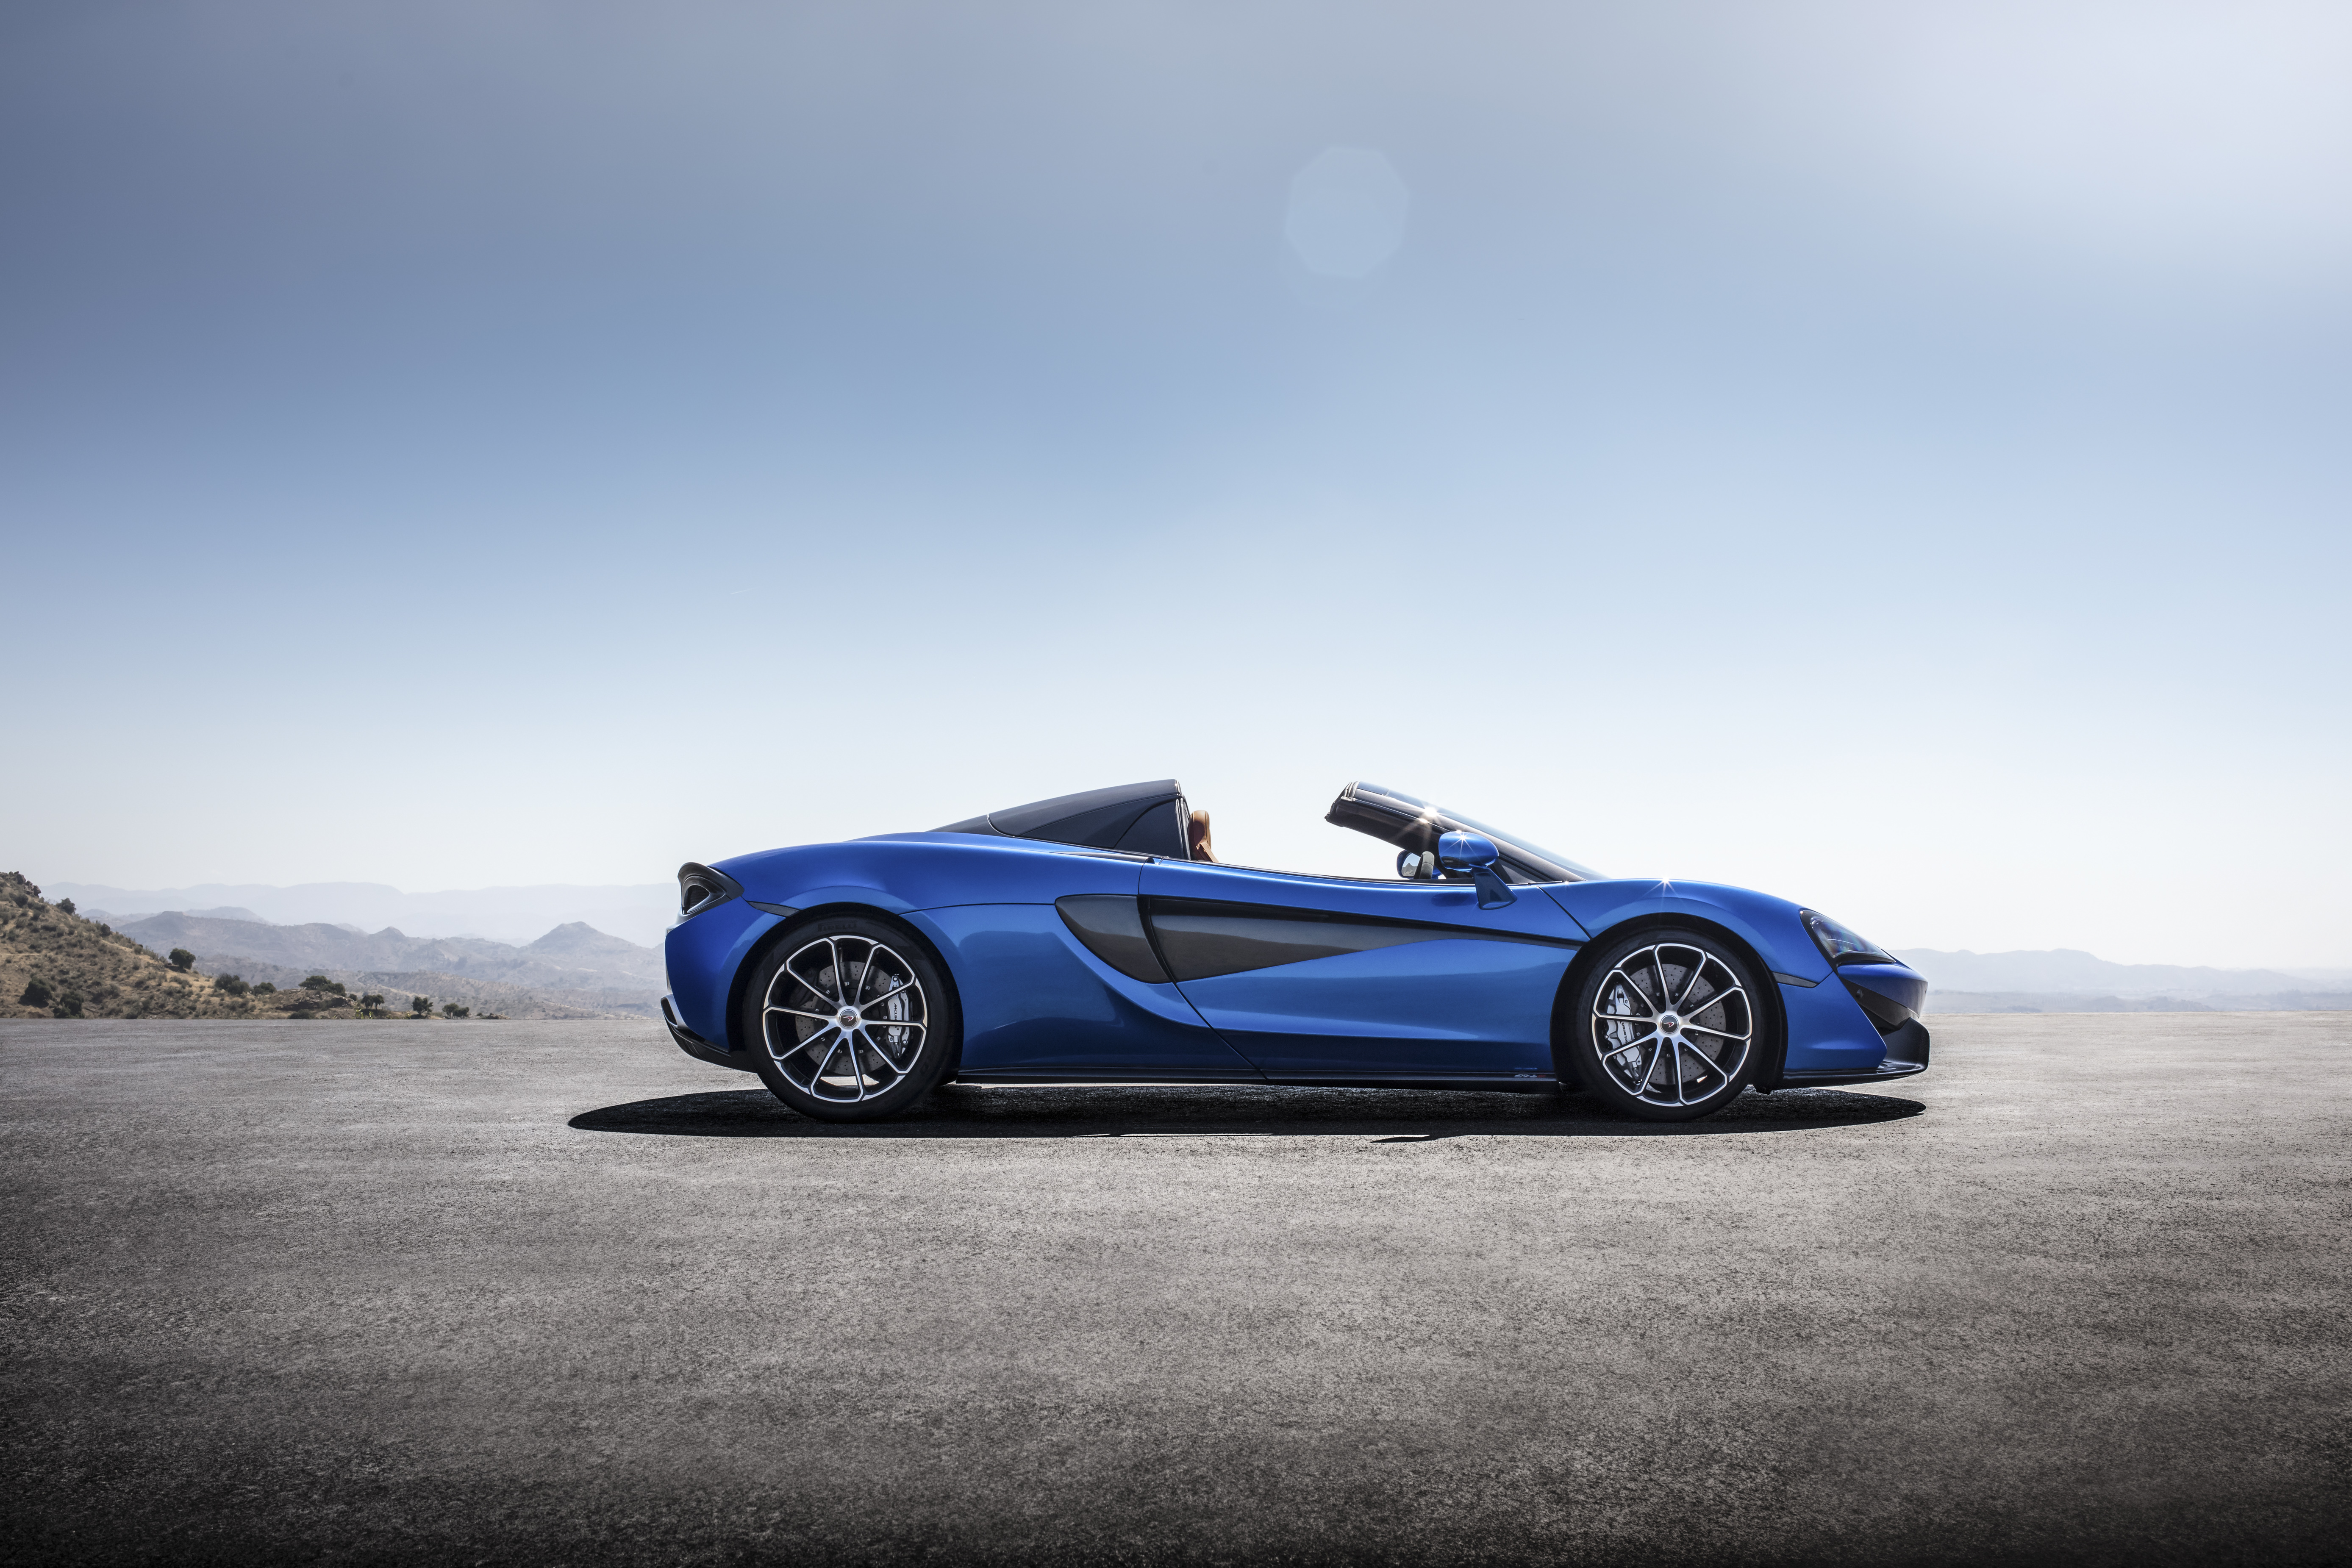 mclaren u0027s new 570s spider is its u0027most attainable u0027 supercar the